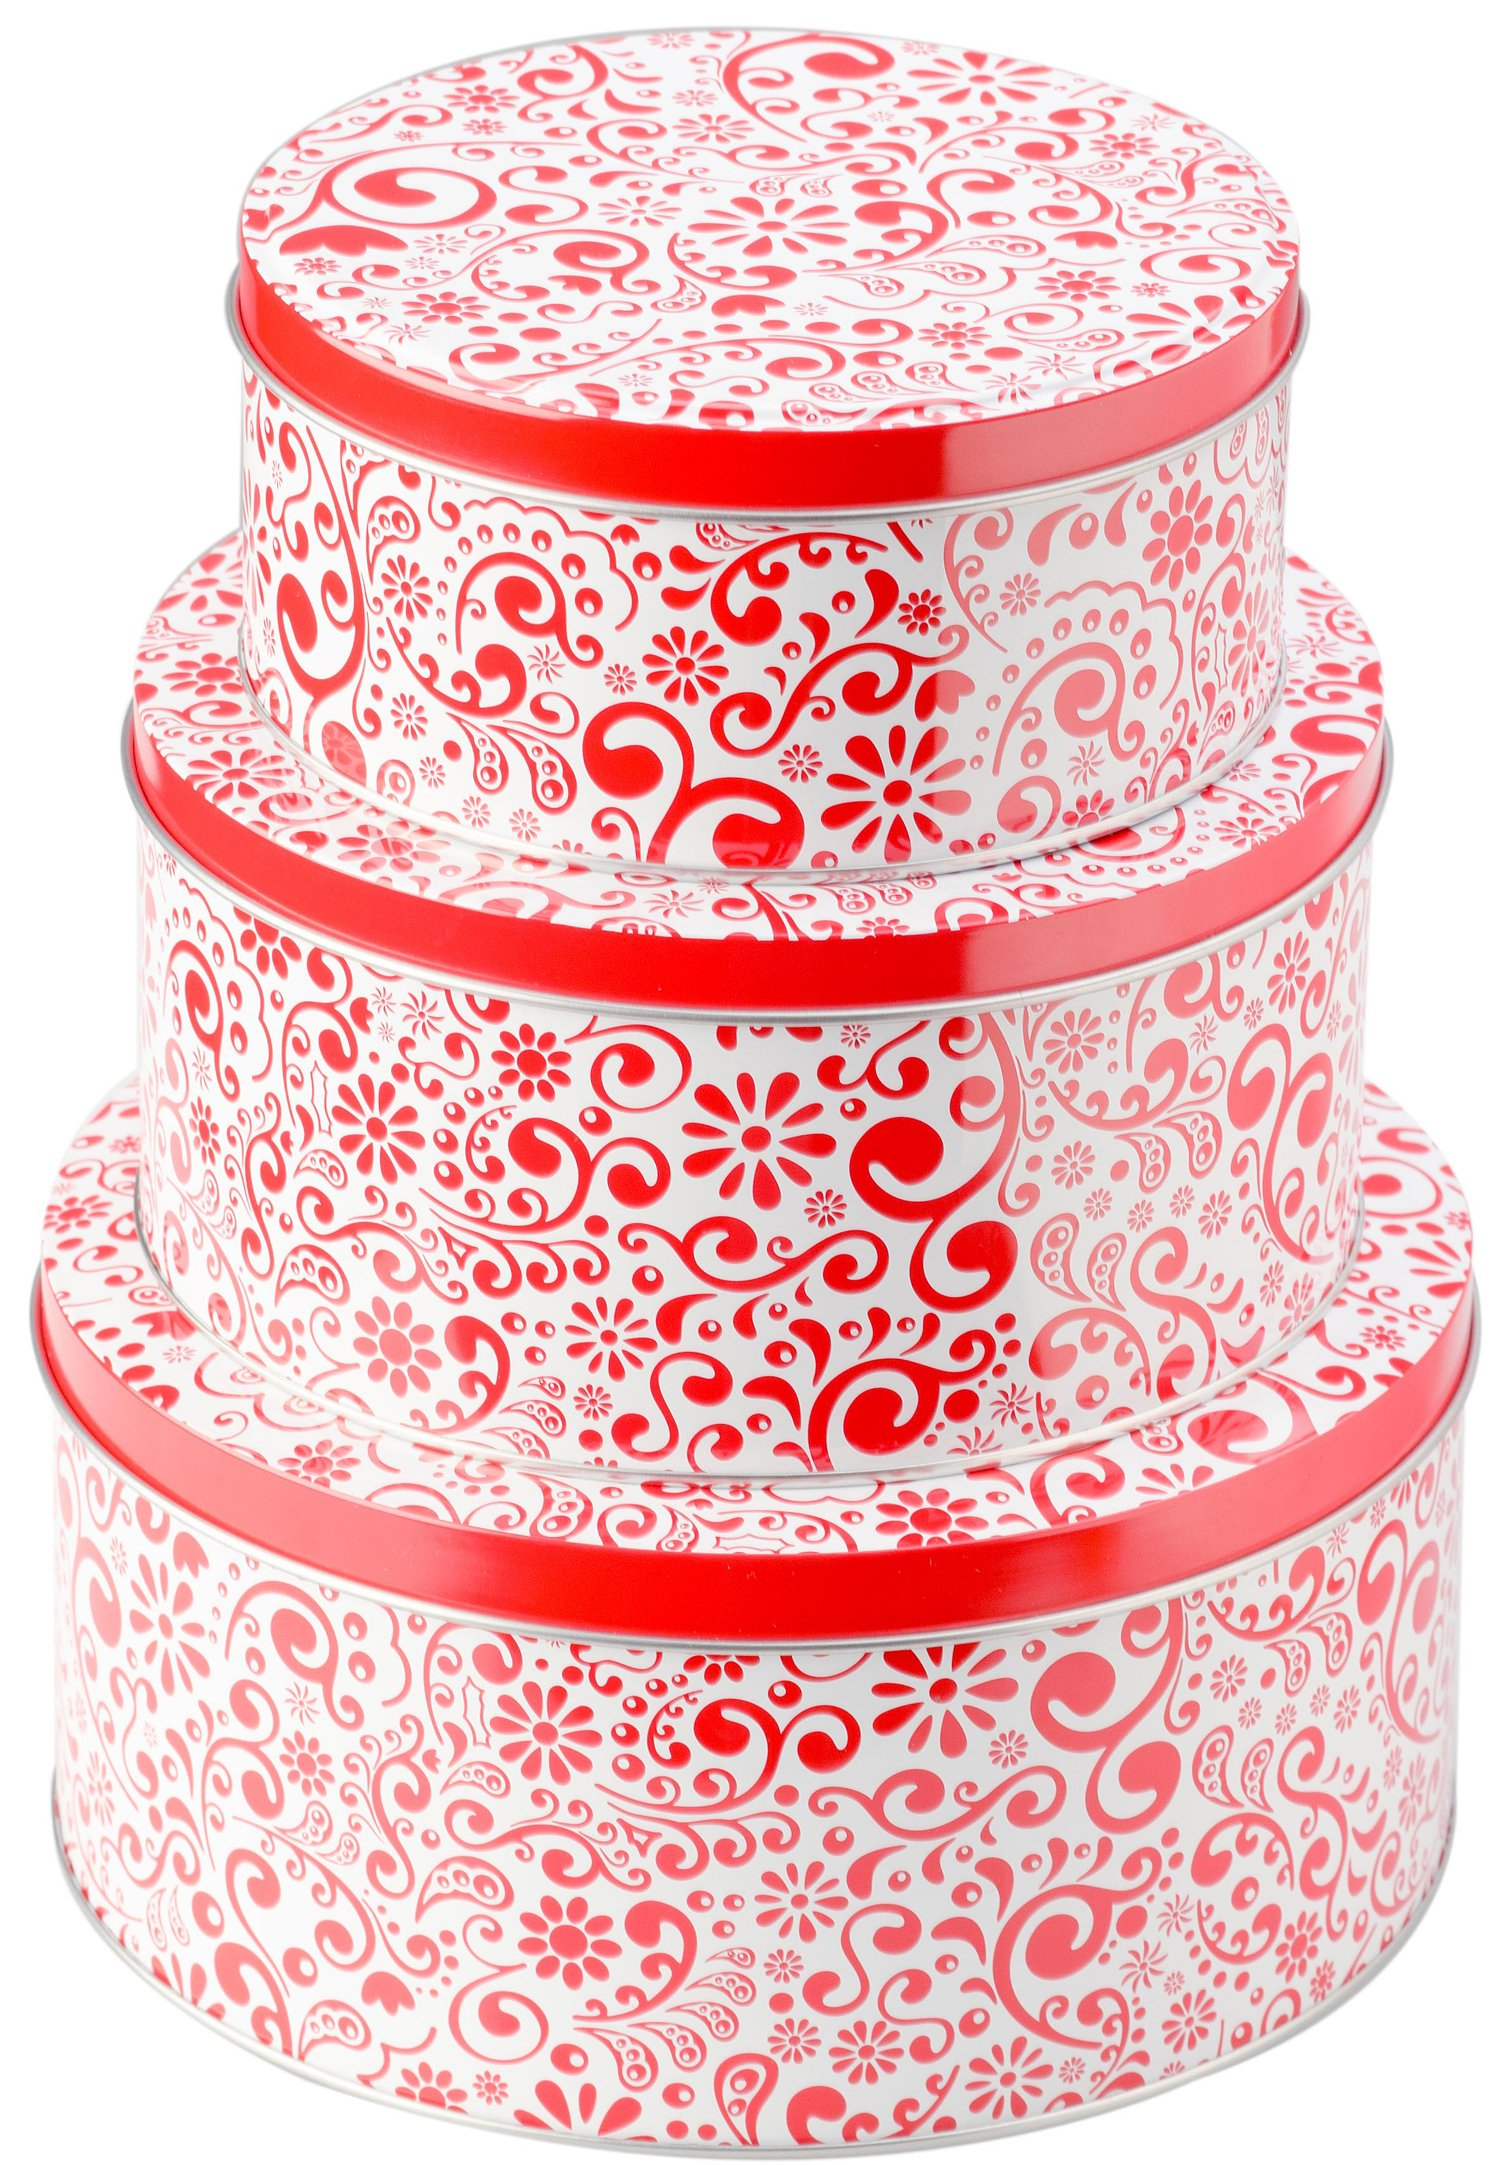 StarPack Premium Christmas Cookie Tins Set of 3 - Decorative Cookie Gift Tins, Extra Thick Steel - Large, Medium and Small, Bonus 101 Cooking Tips